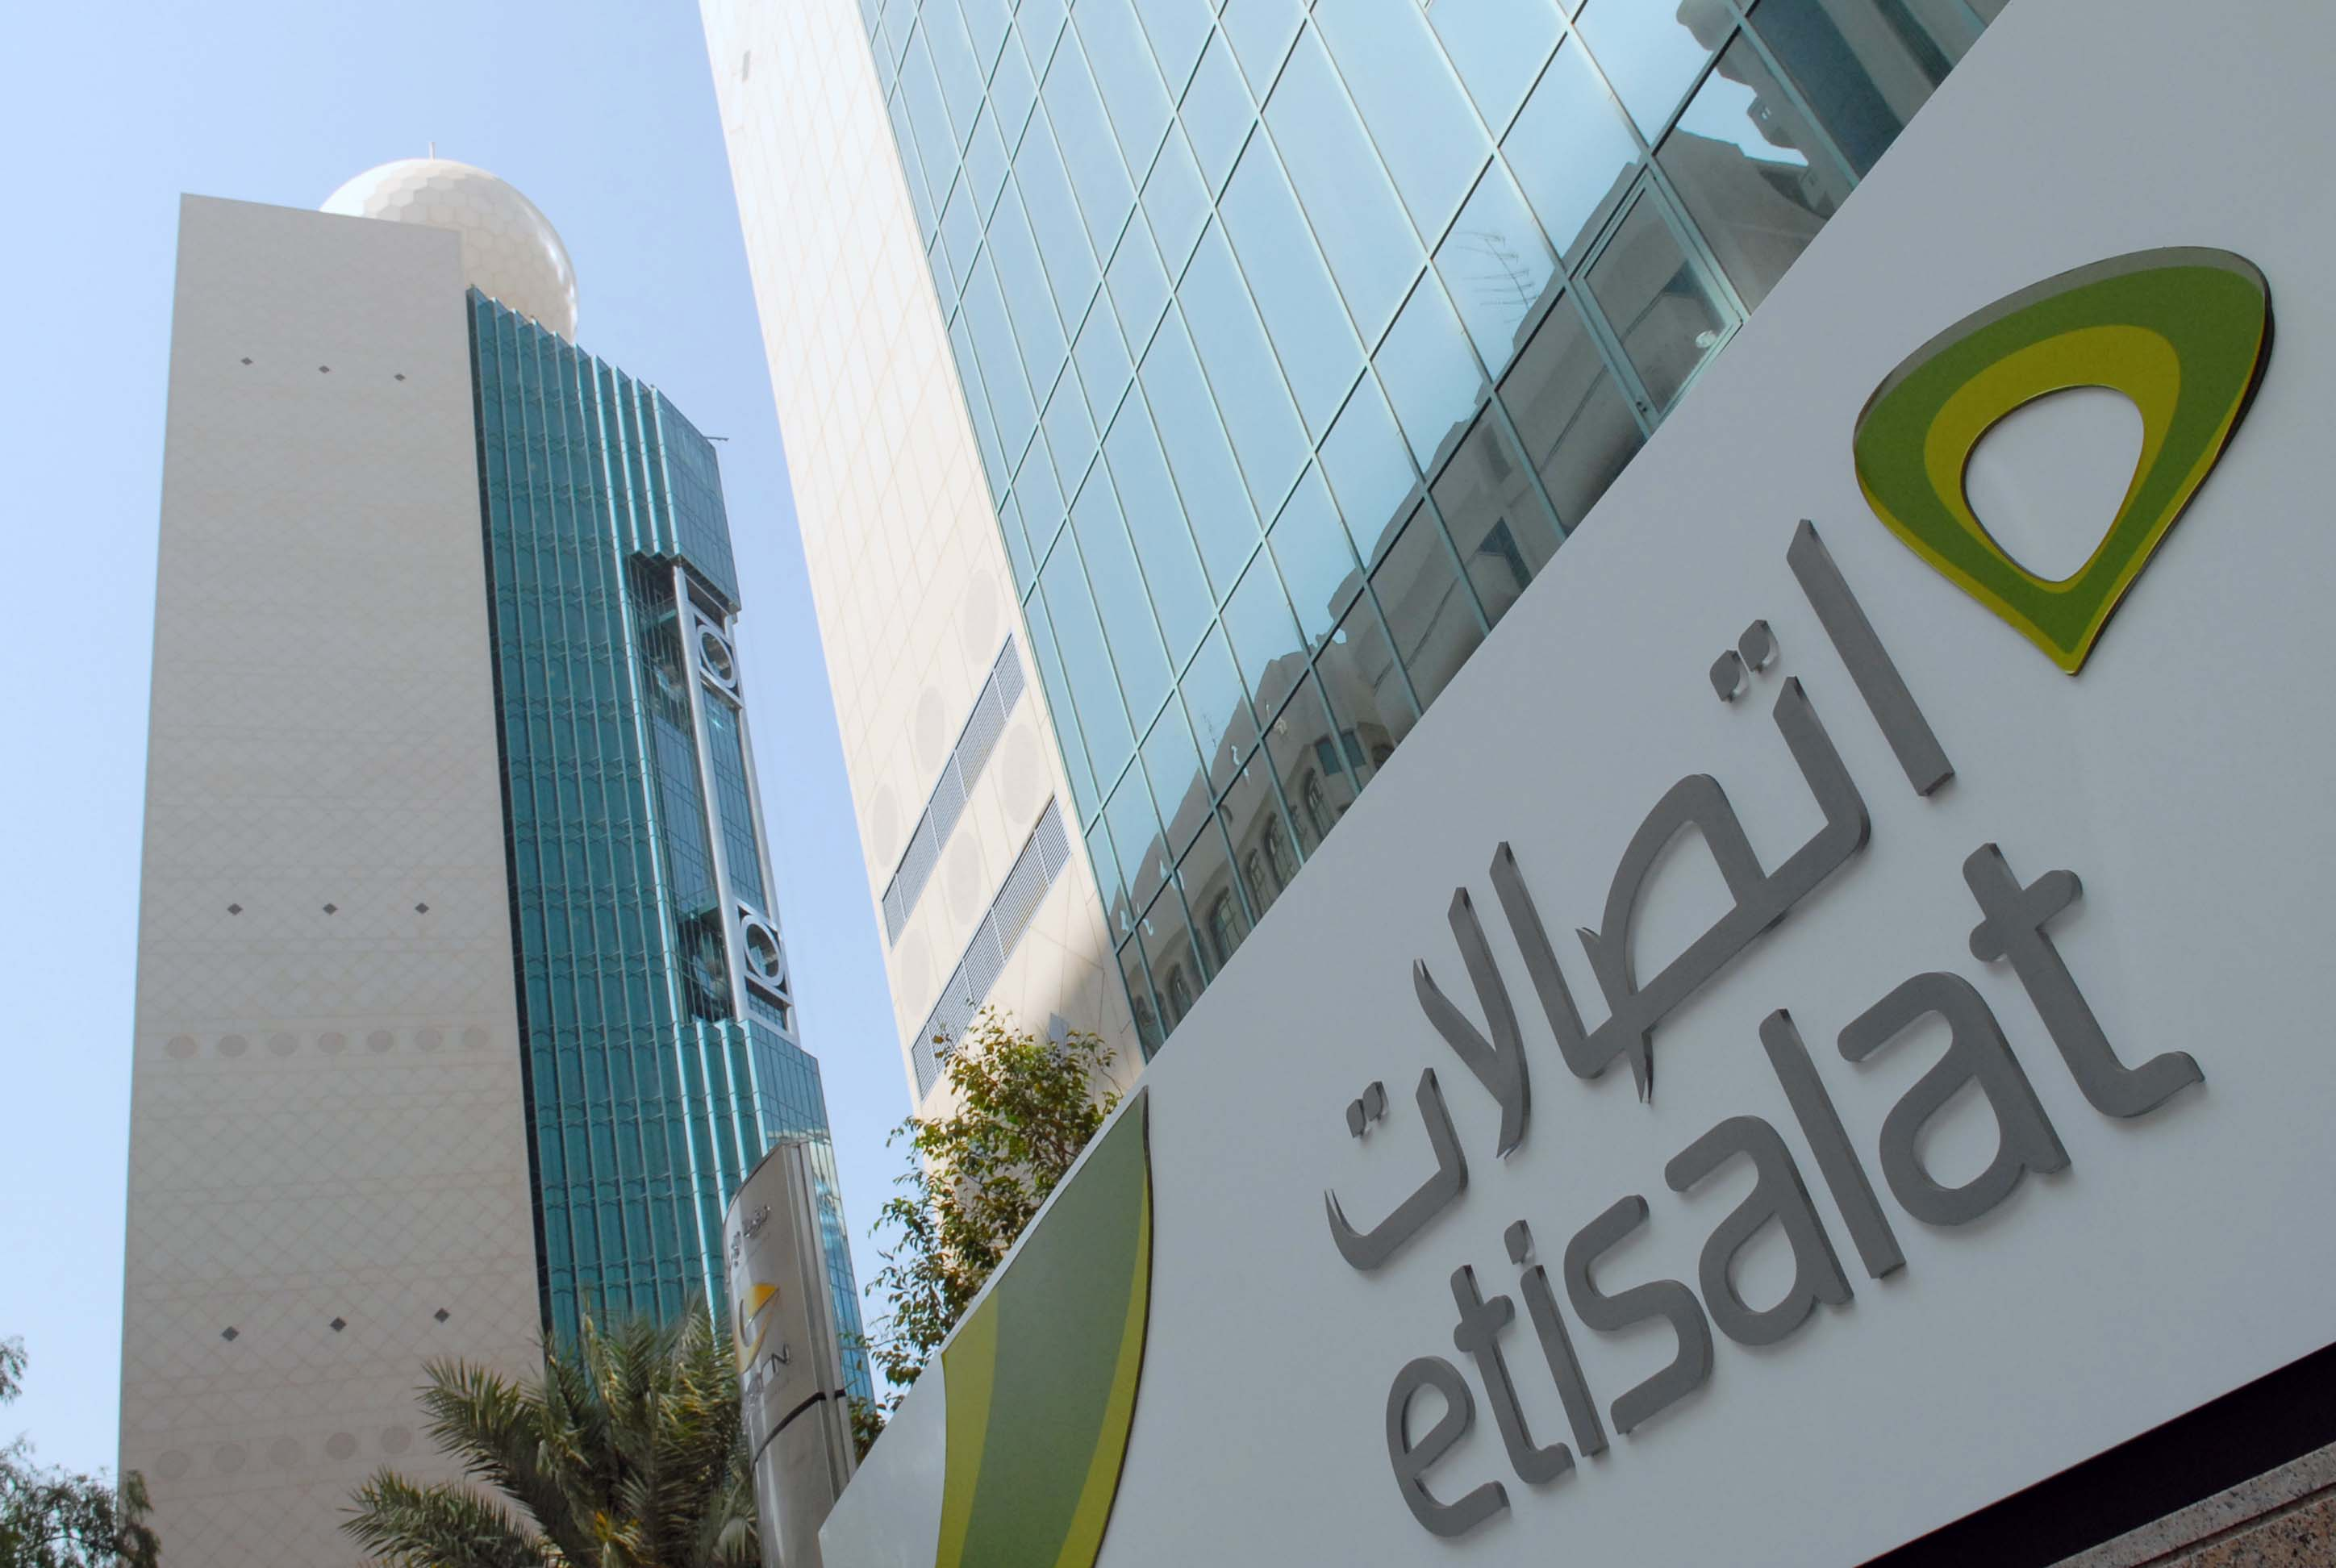 Etisalat announces commercial launch of NB-IoT and LTE-M